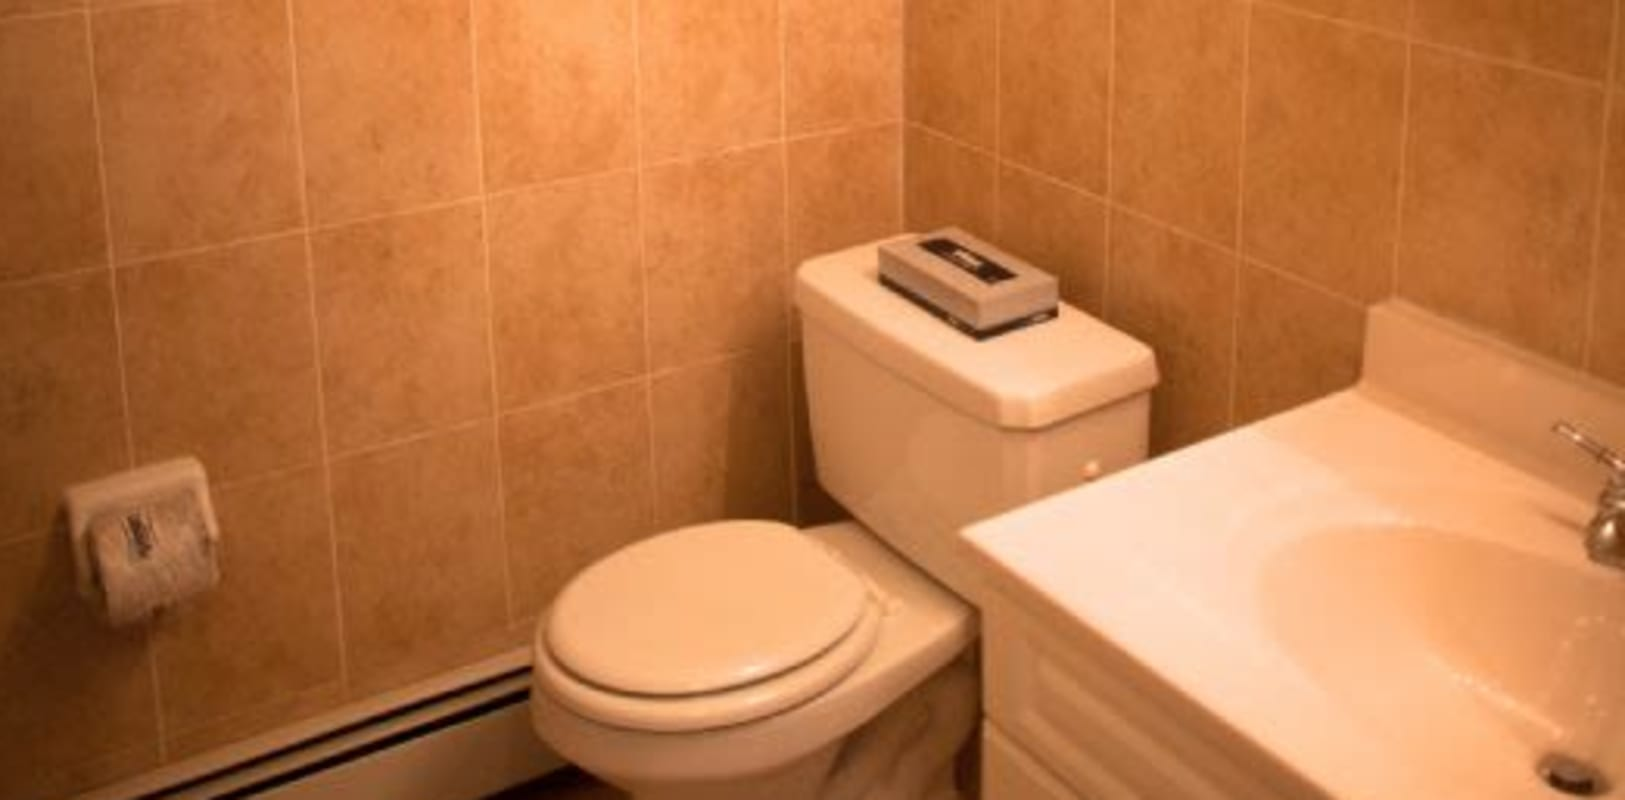 Tile style walls in bathroom at Wynbrook West Apartments in East Windsor, New Jersey